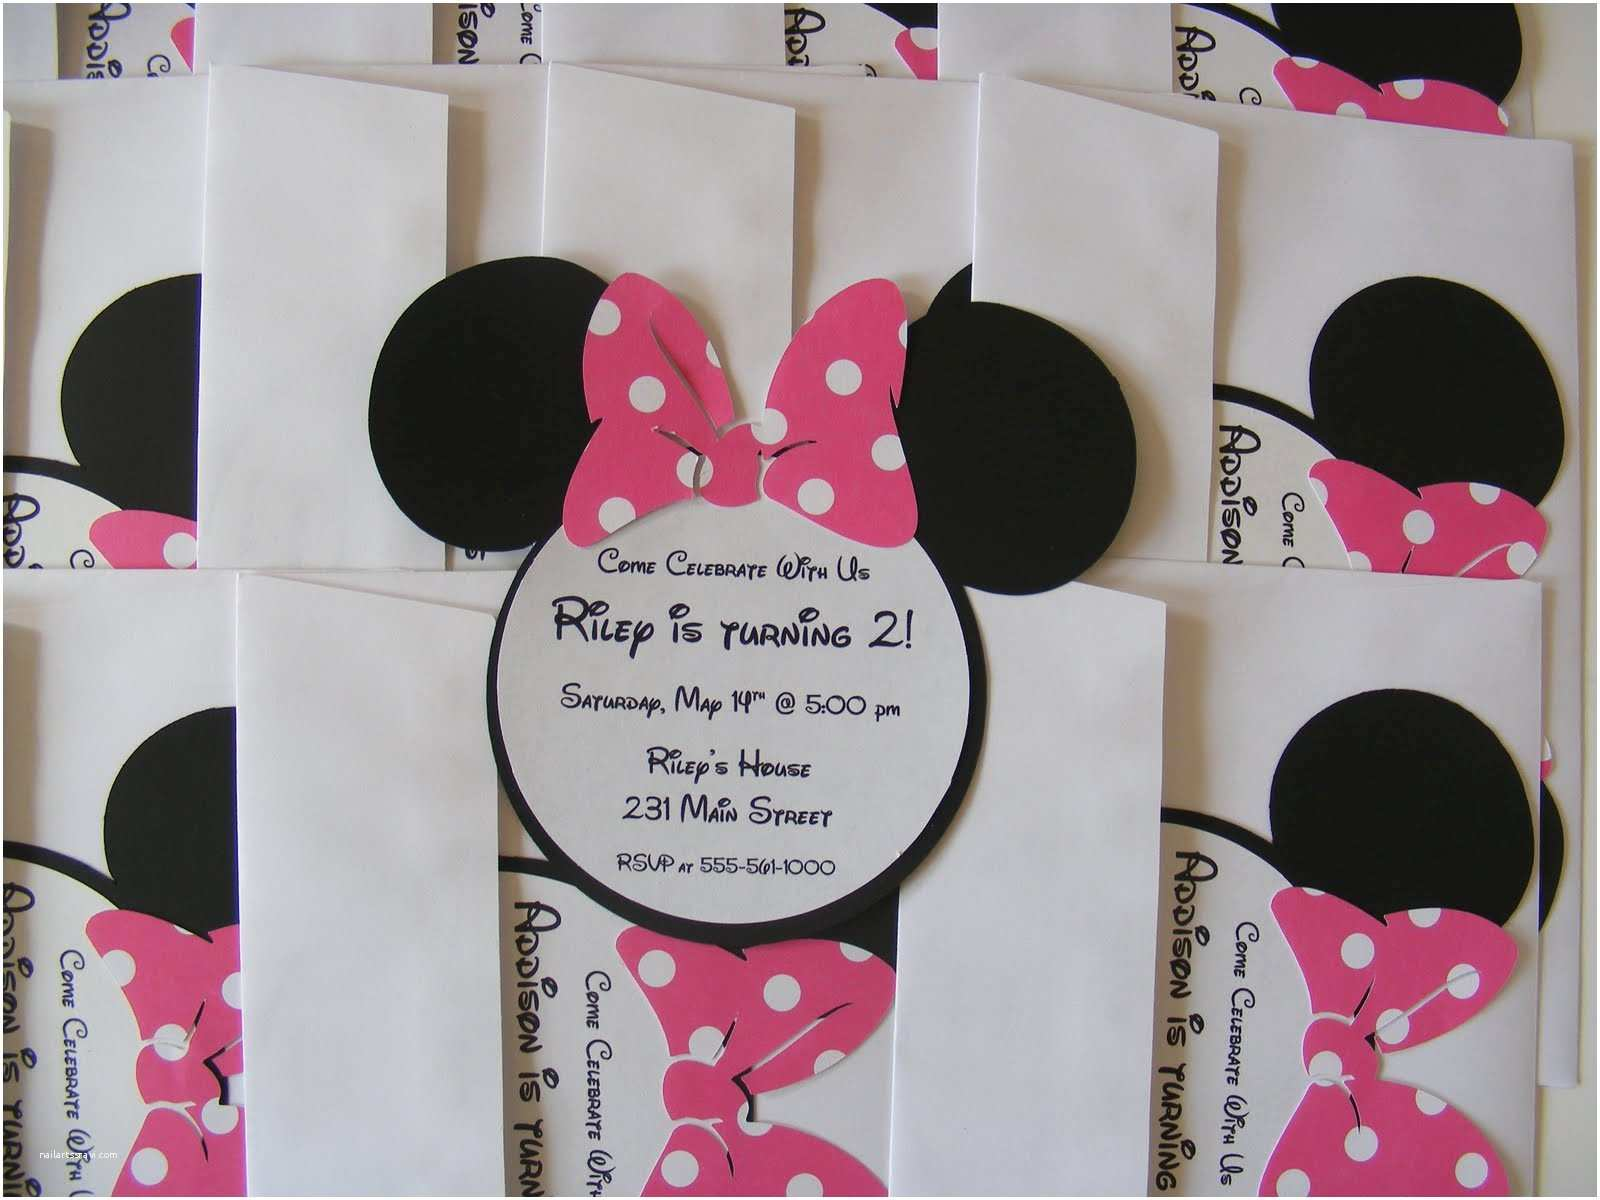 Minnie Mouse Birthday Party Invitations Whimsical Creations by Ann Minnie Mouse Birthday Party Ideas